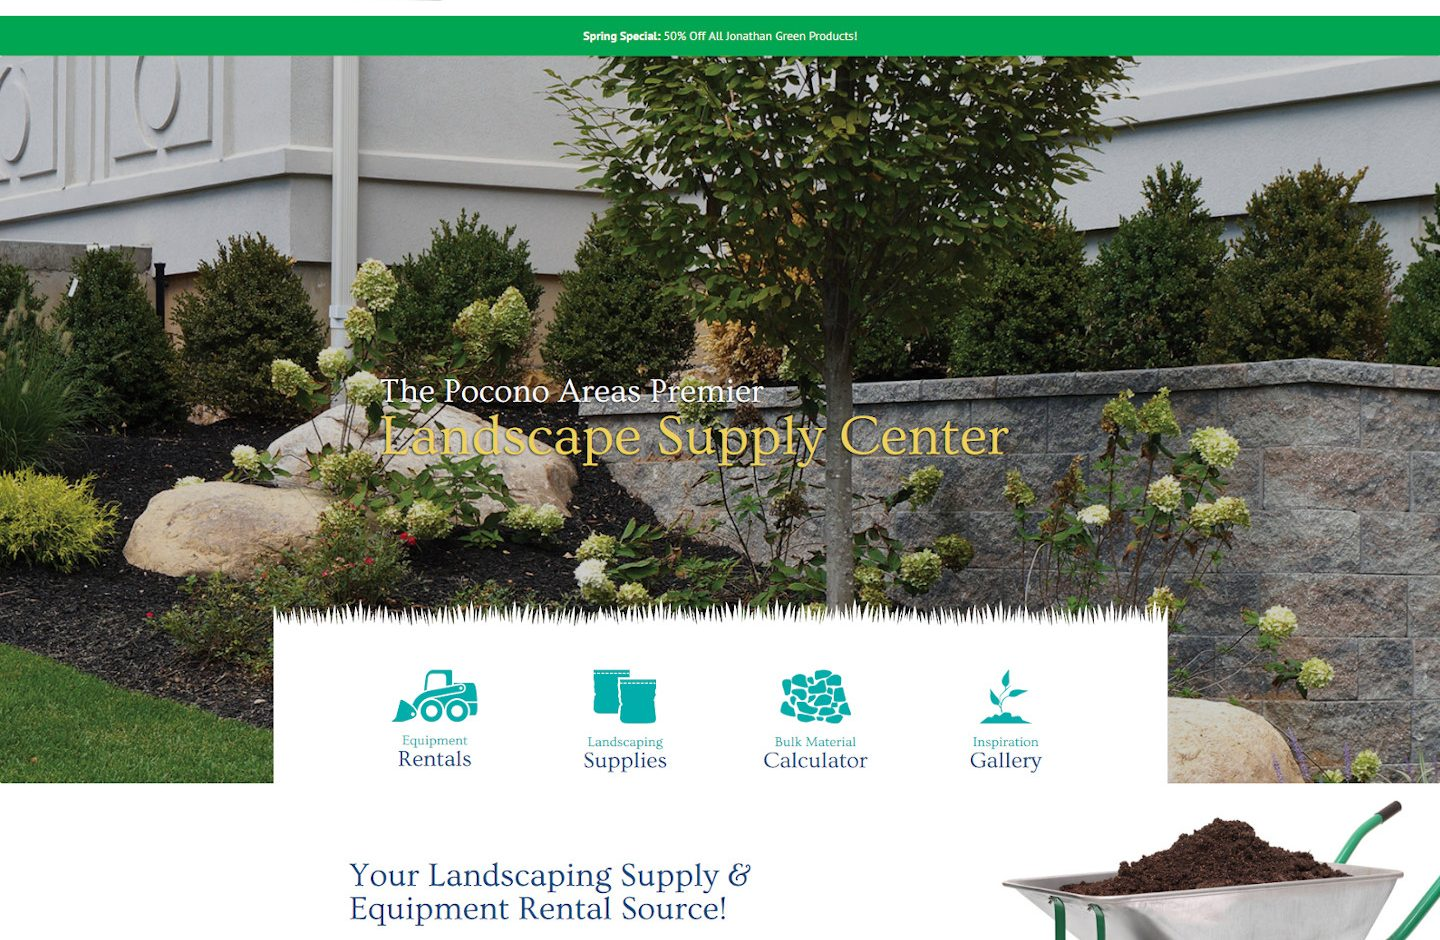 903 Landscape Supply